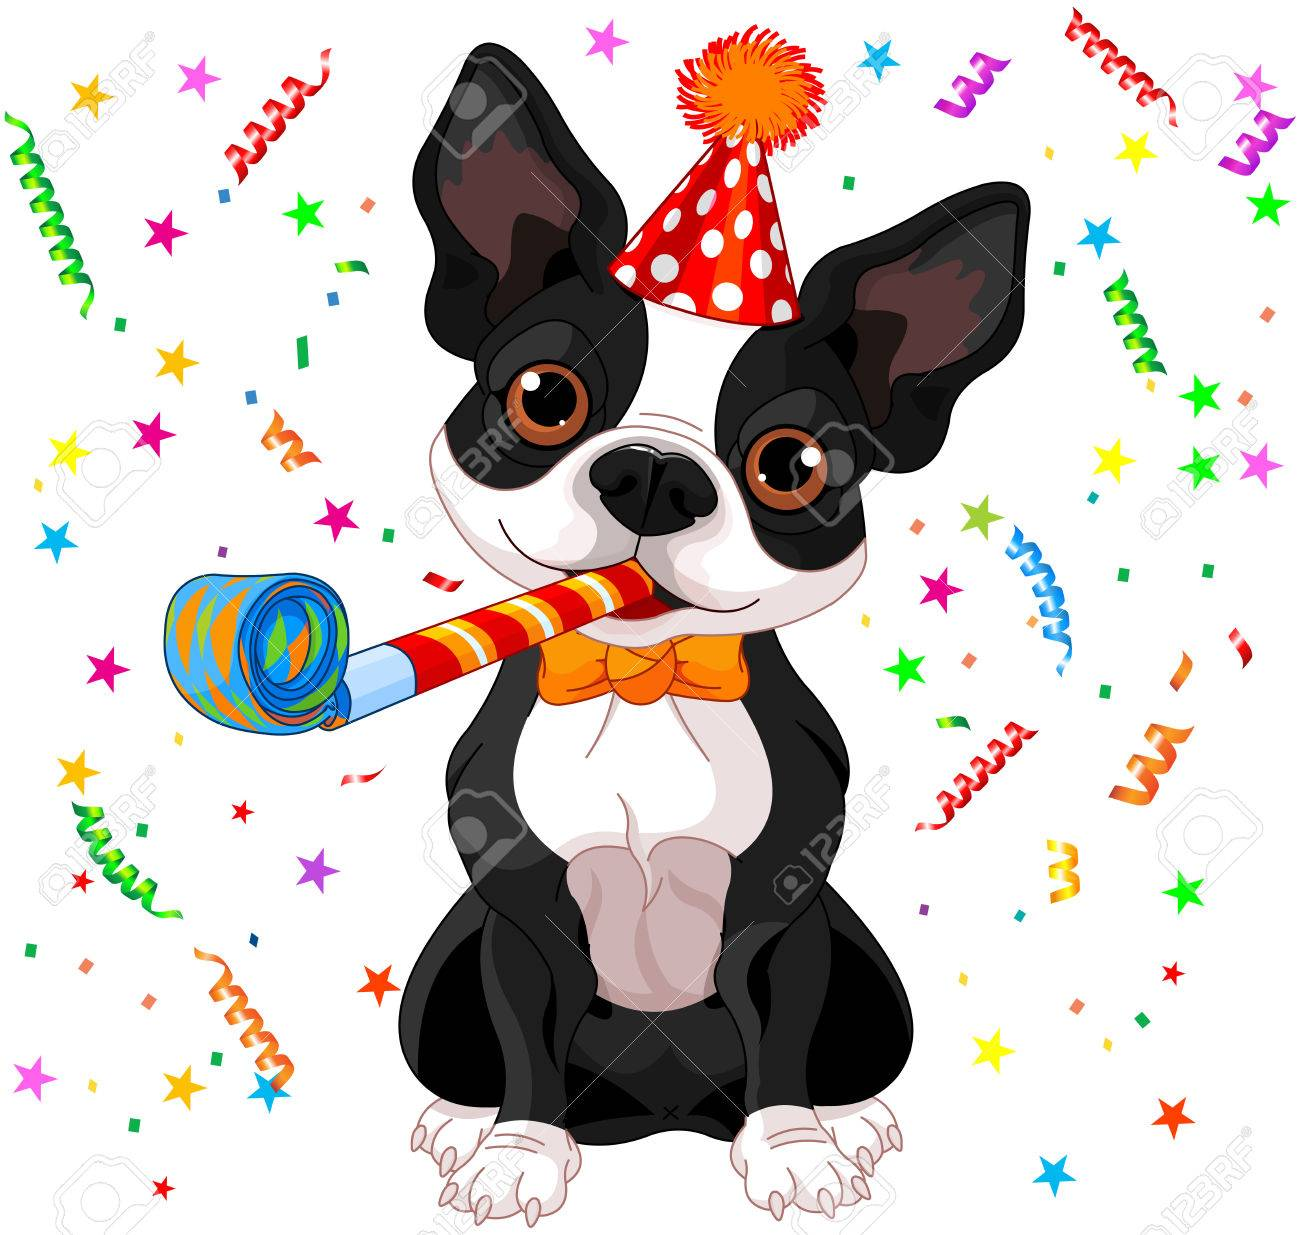 L'école du chiot et la méthode naturelle - Page 3 35588778-illustration-of-cute-boston-terrier-celebrating